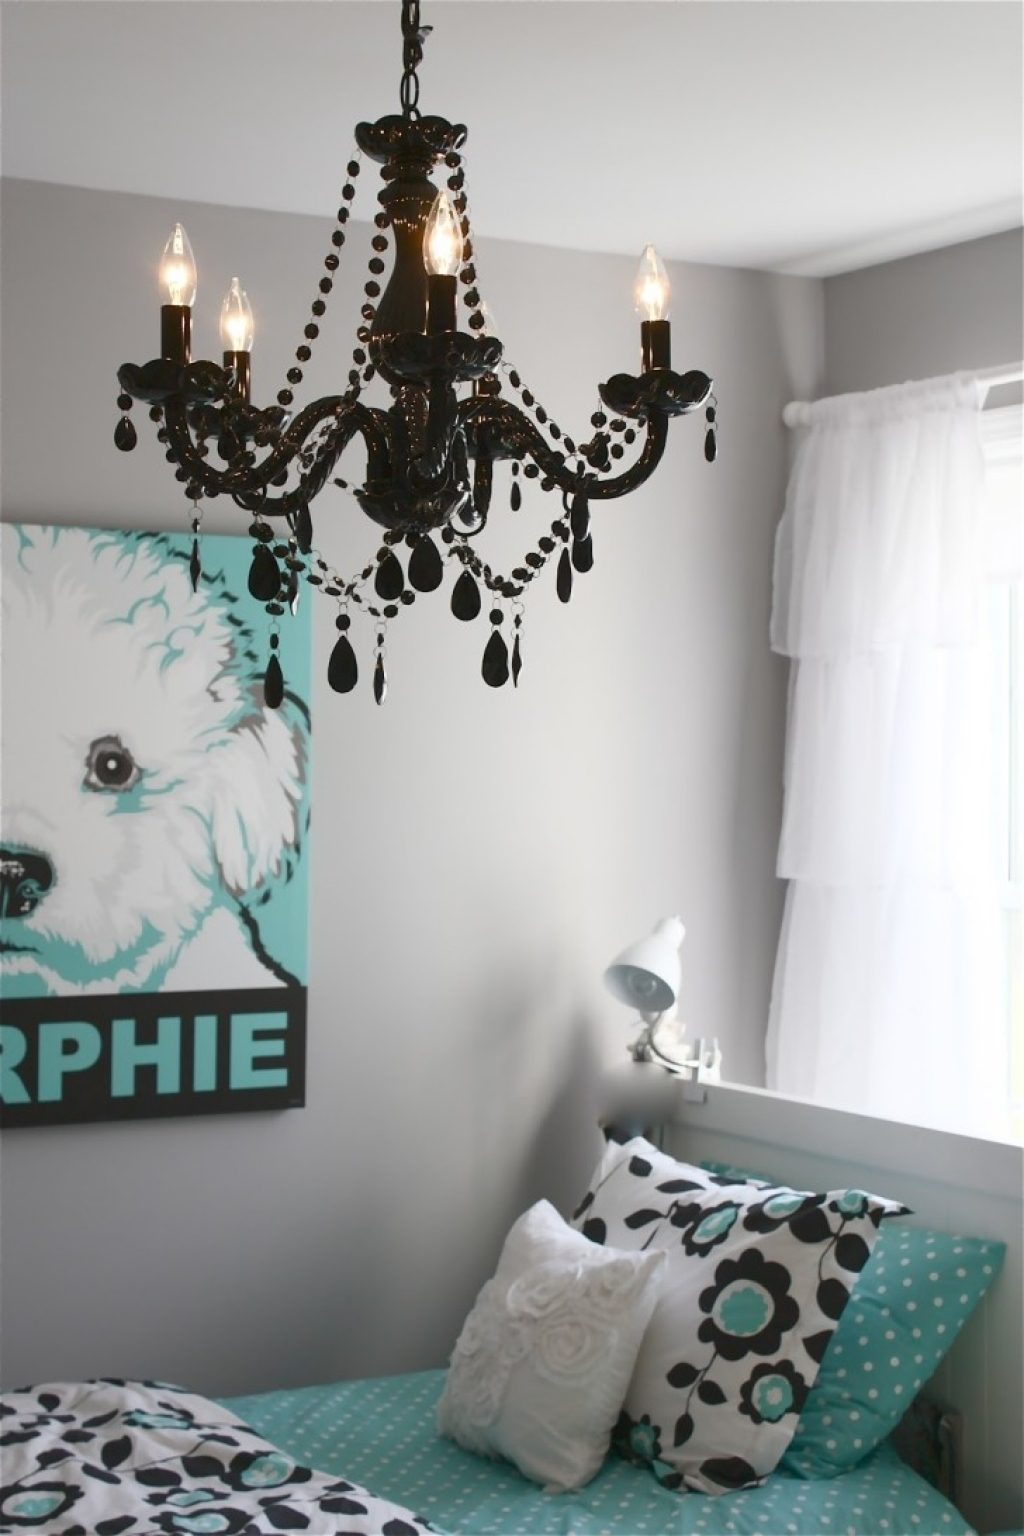 Cheap Chandeliers For Bedrooms With Small White Chandeliers (Image 12 of 25)